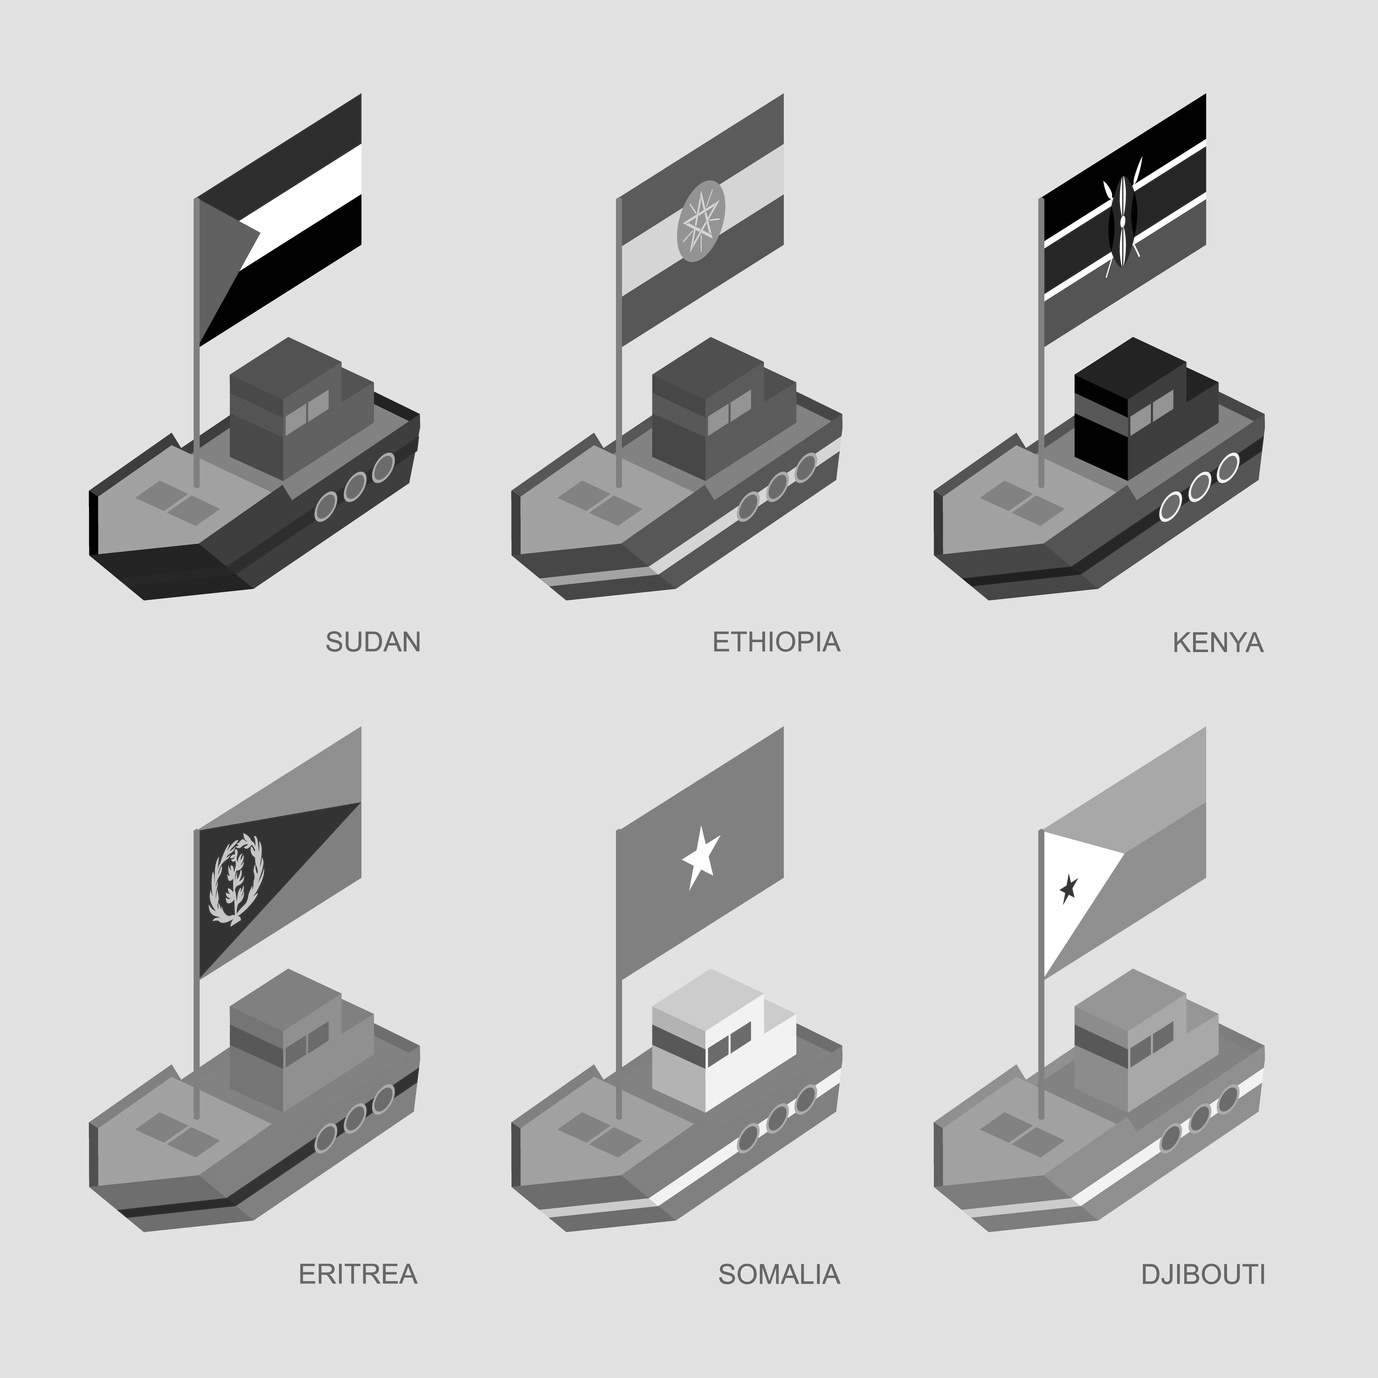 Set of isometric 3d ships with flags of African countries. Cartoon vessels with standards - Sudan, Ethiopia, Kenya, Eritrea, Somalia, Djibouti. Sea transport icons for infographics.